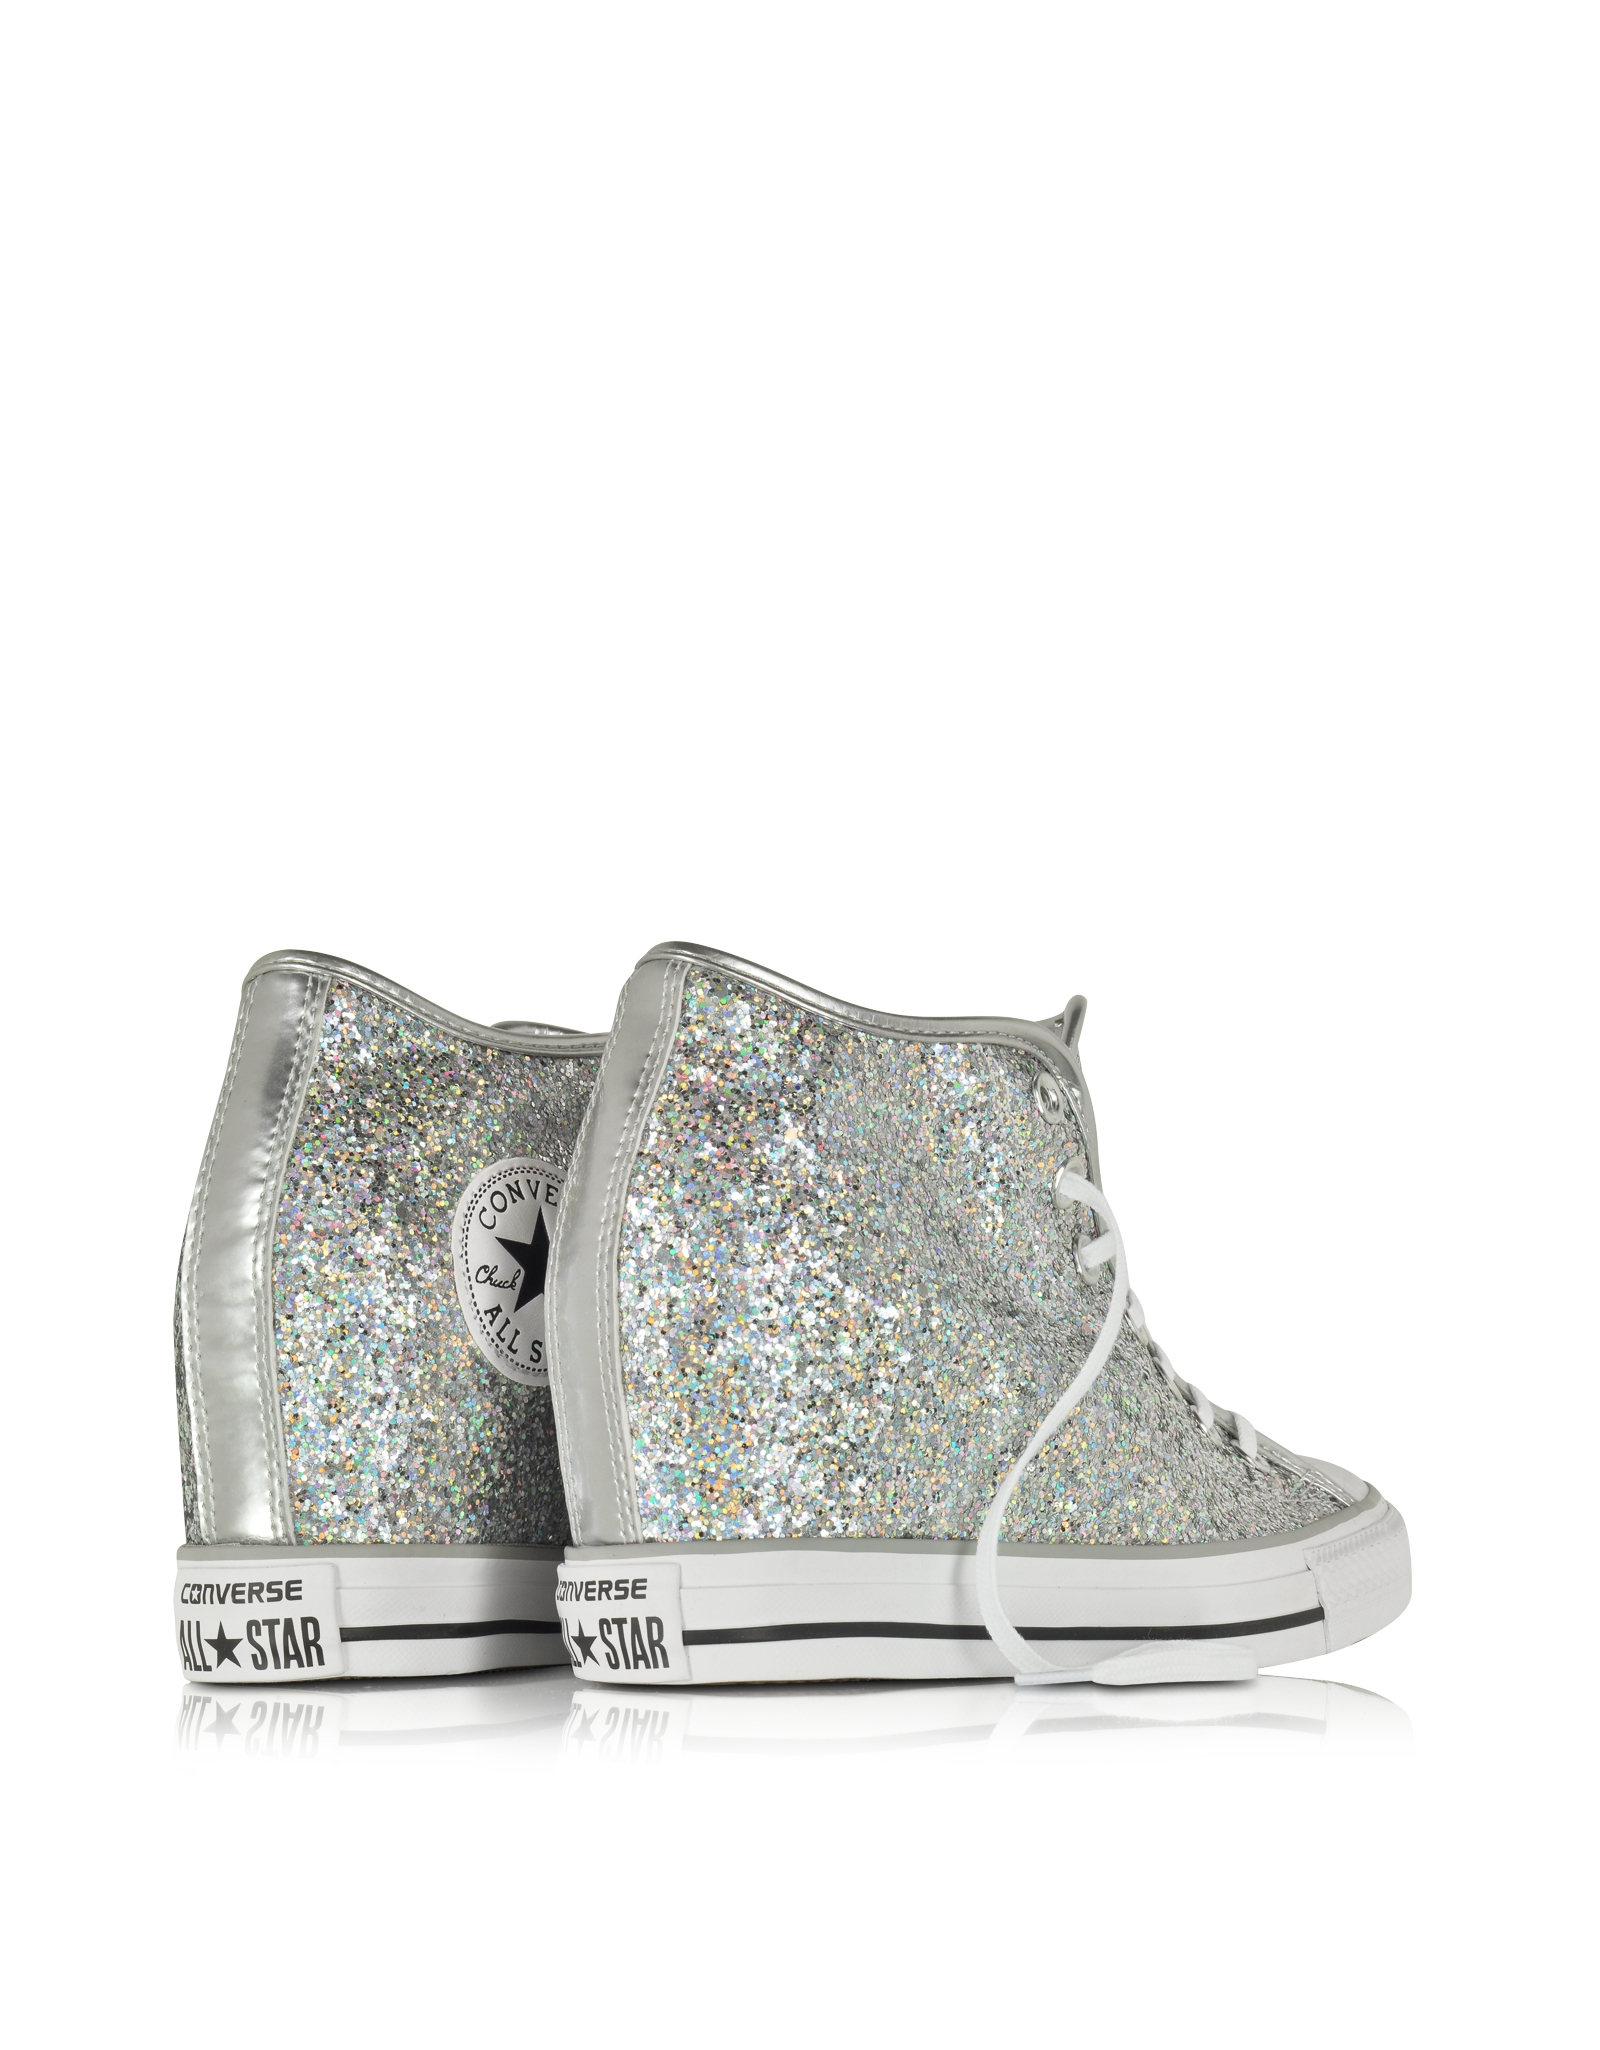 3693a58232b Lyst - Converse All Star Mid Lux Glitter Wedge Sneaker in Black